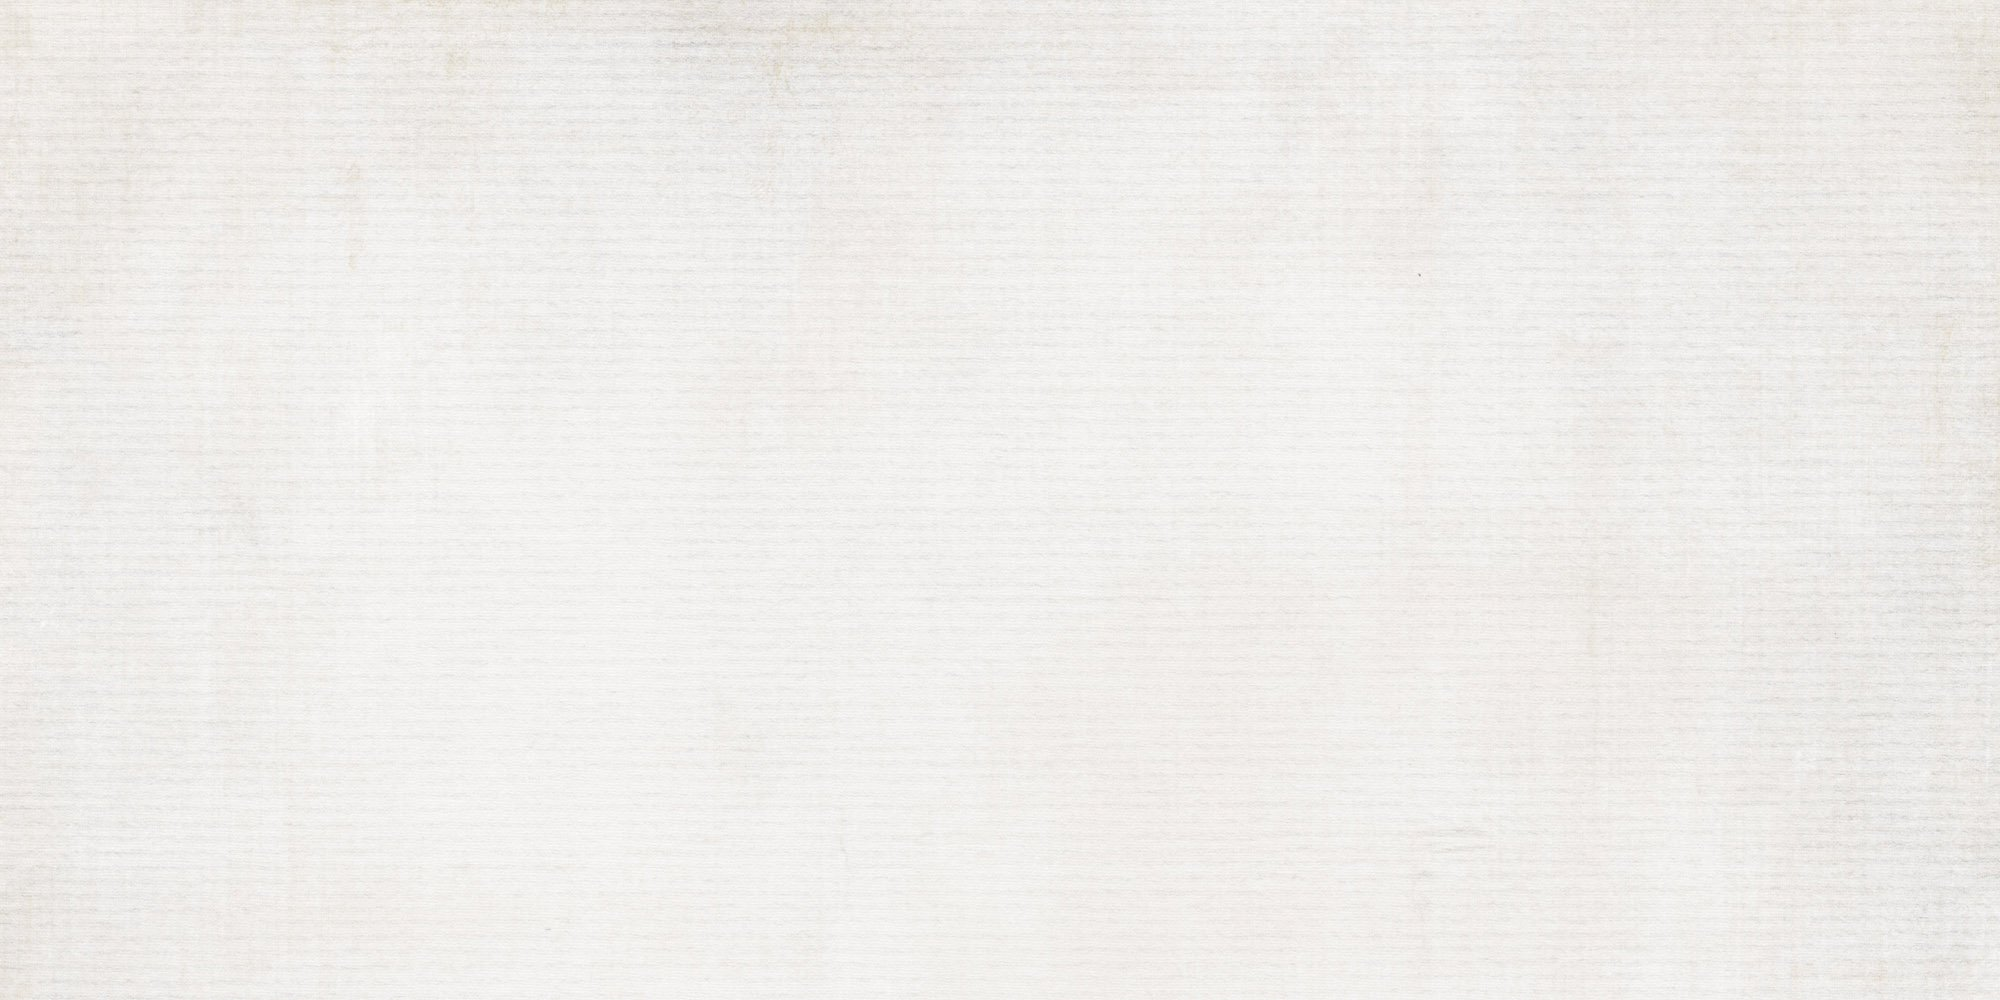 Cream Colored Backgrounds Blog background cream 2000x1000